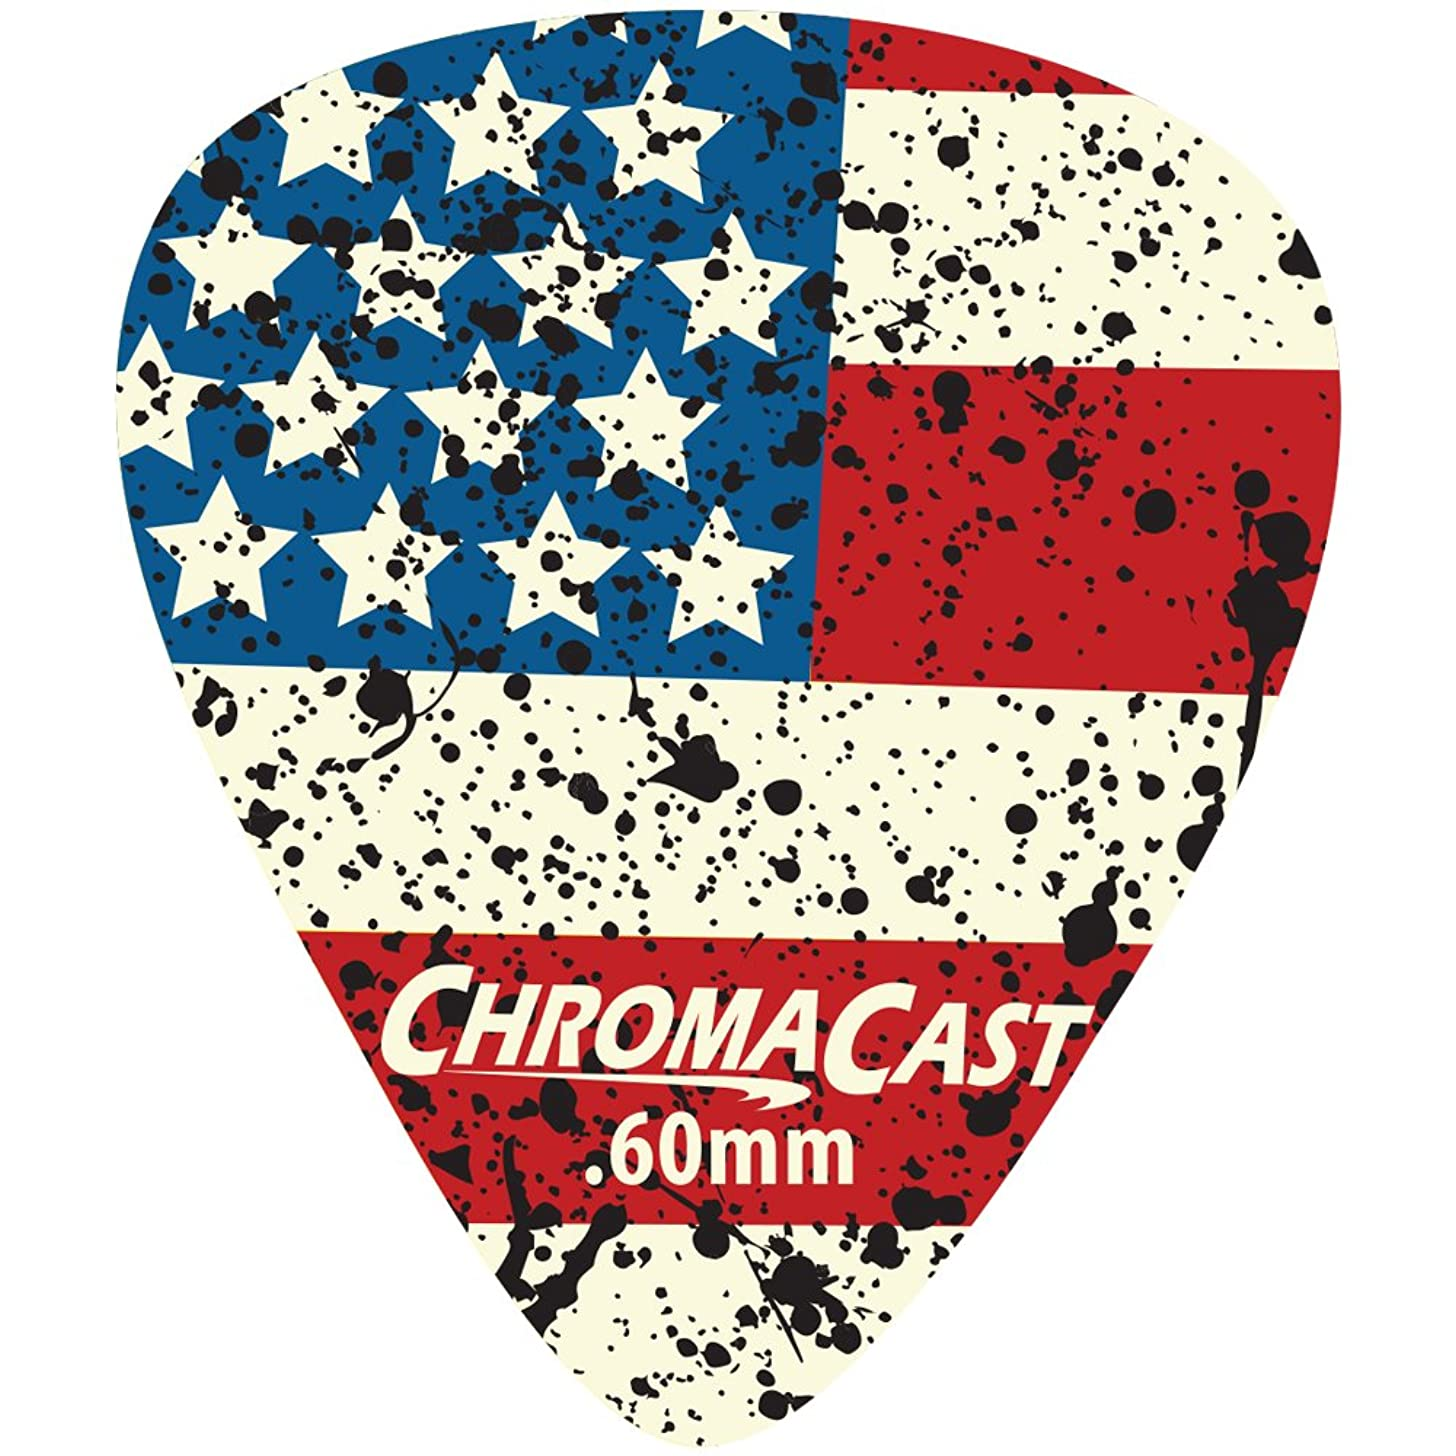 ChromaCast CC-DP-USA-60-10PK USA Flag Delrin Guitar Picks .60mm, Light Dura, 10 Pack